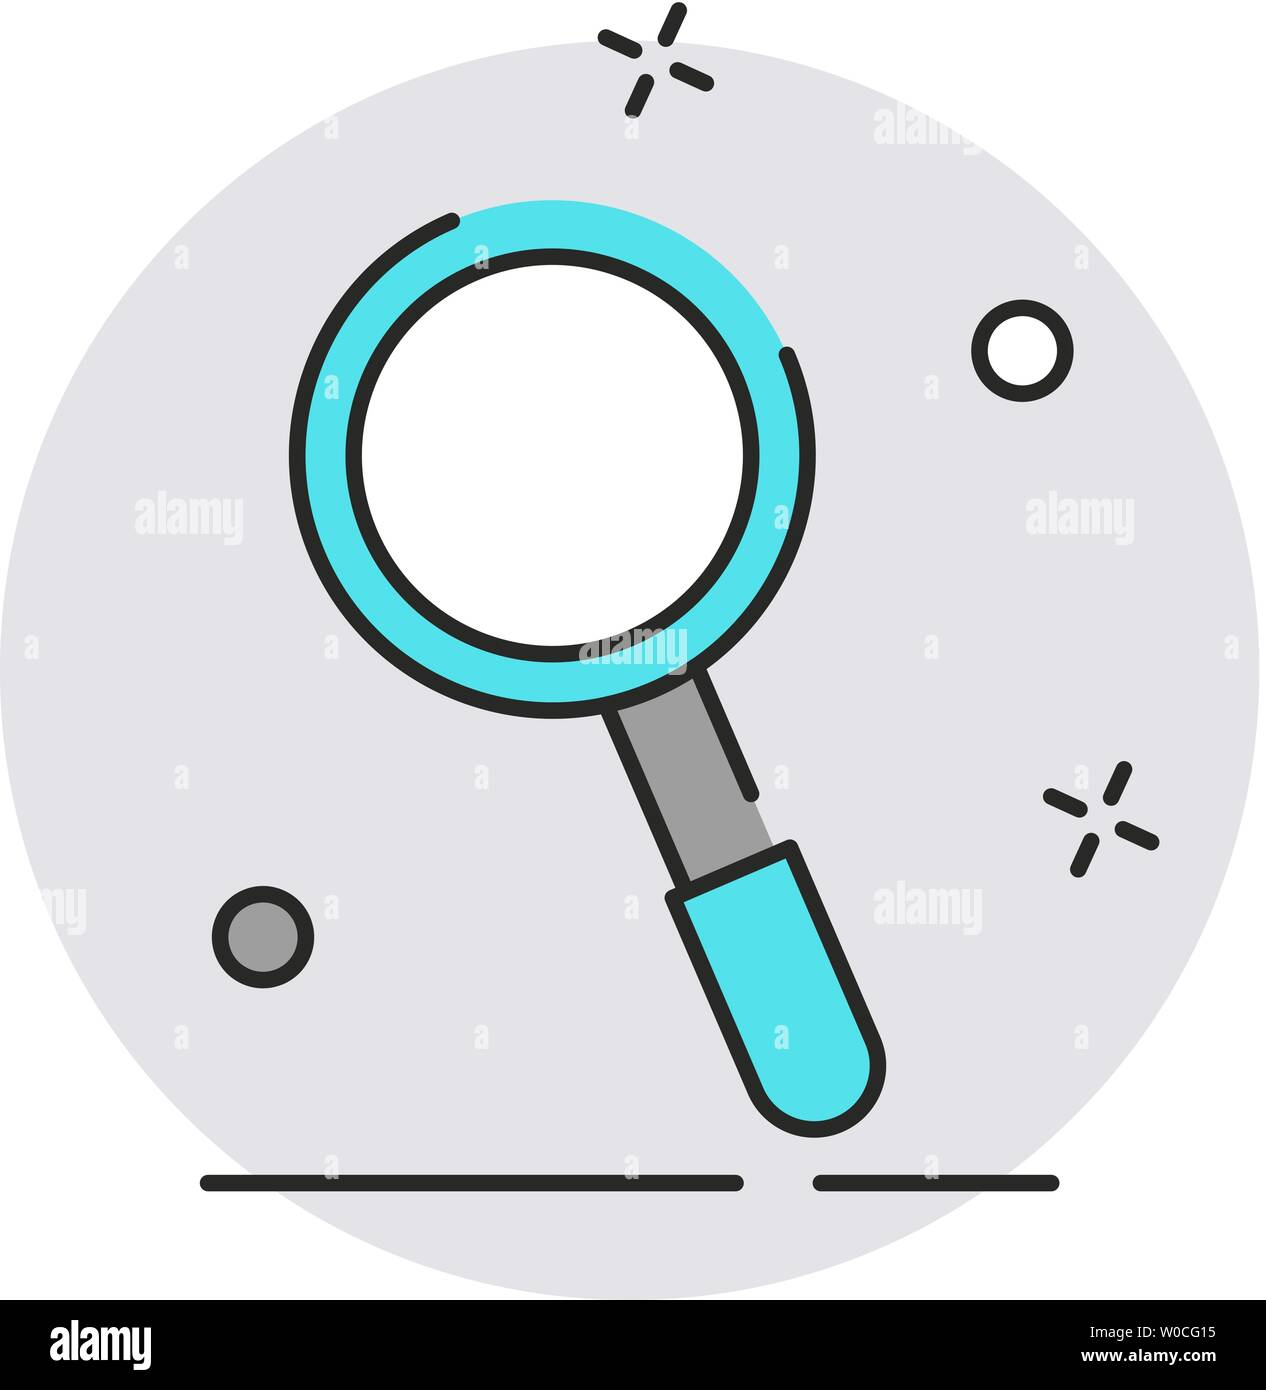 Magnifying glass icon. Modern flat design style. Vector simple illustration icon for web site page, marketing, mobile app, design element on white bac - Stock Image